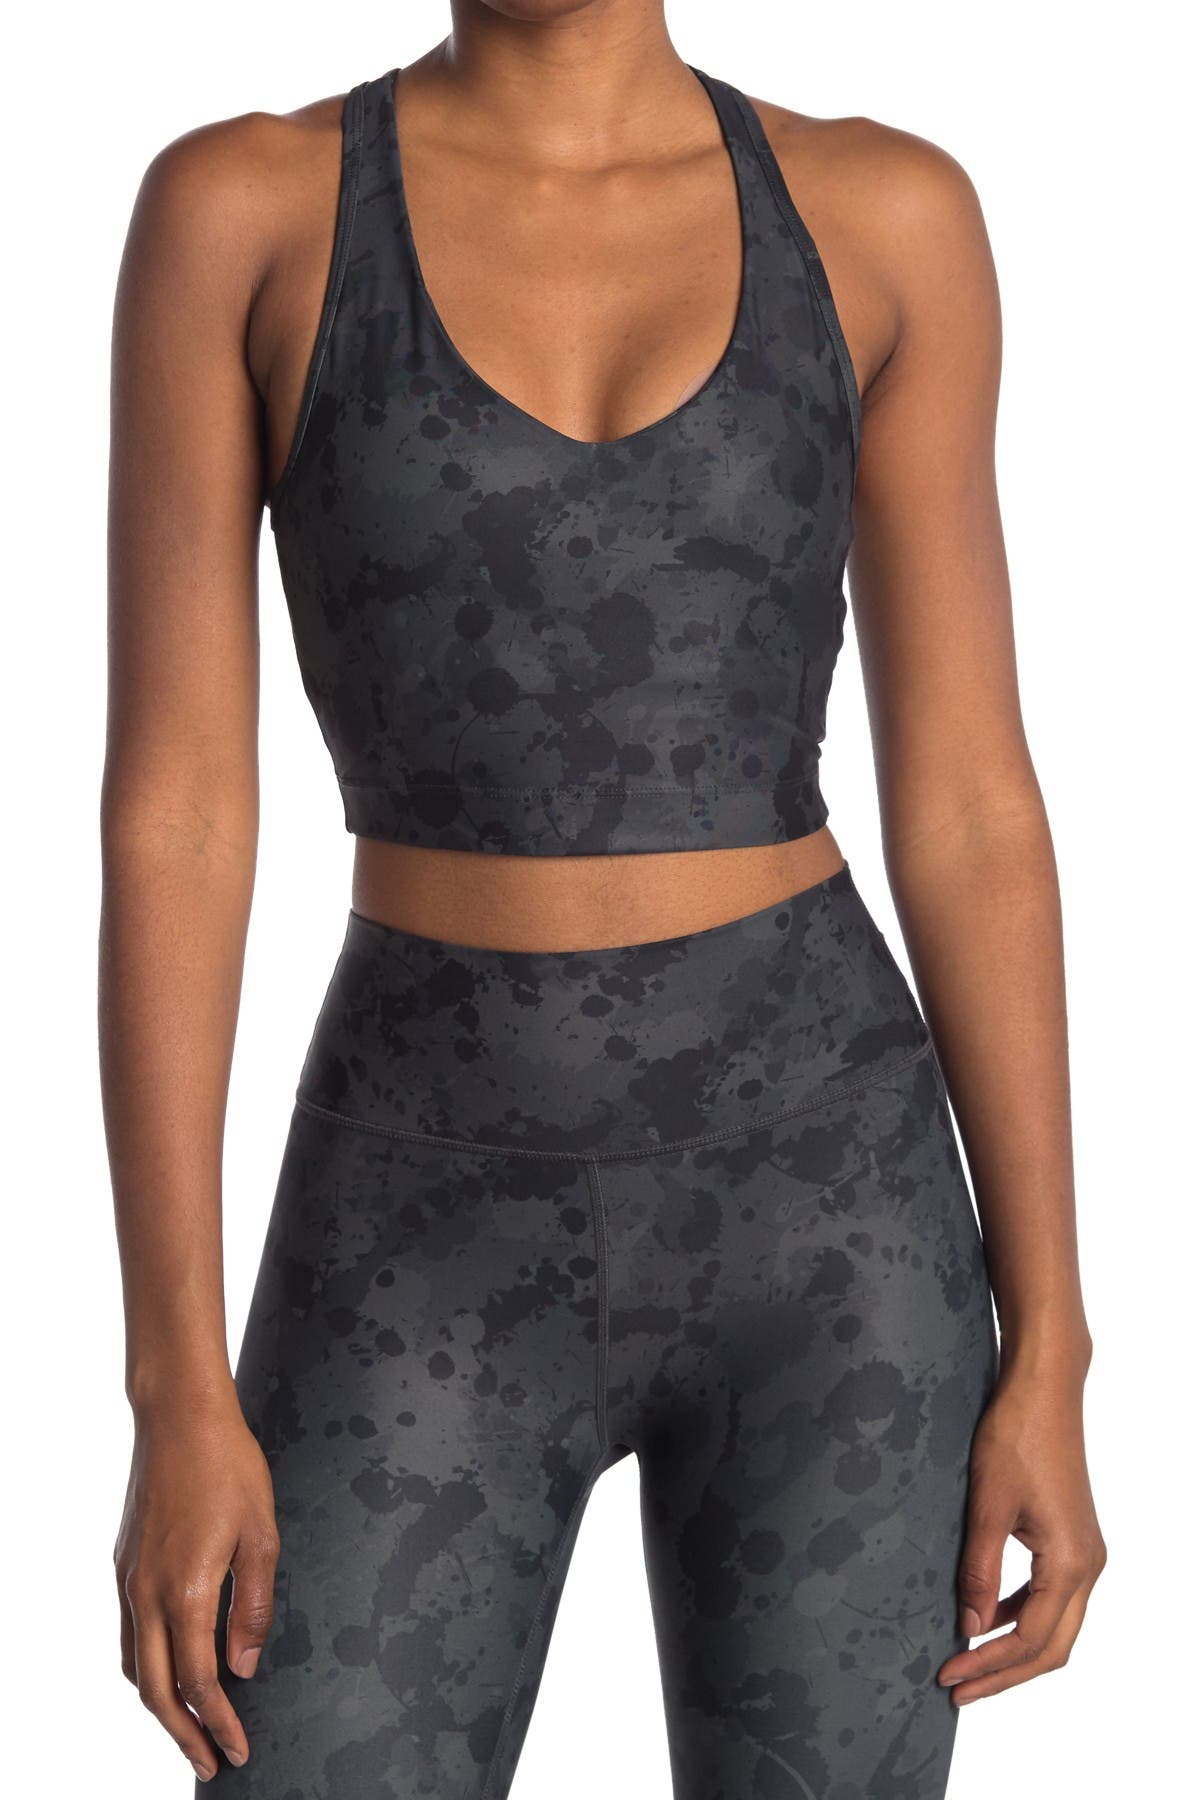 Image of SAGE COLLECTIVE Printed Sports Bra